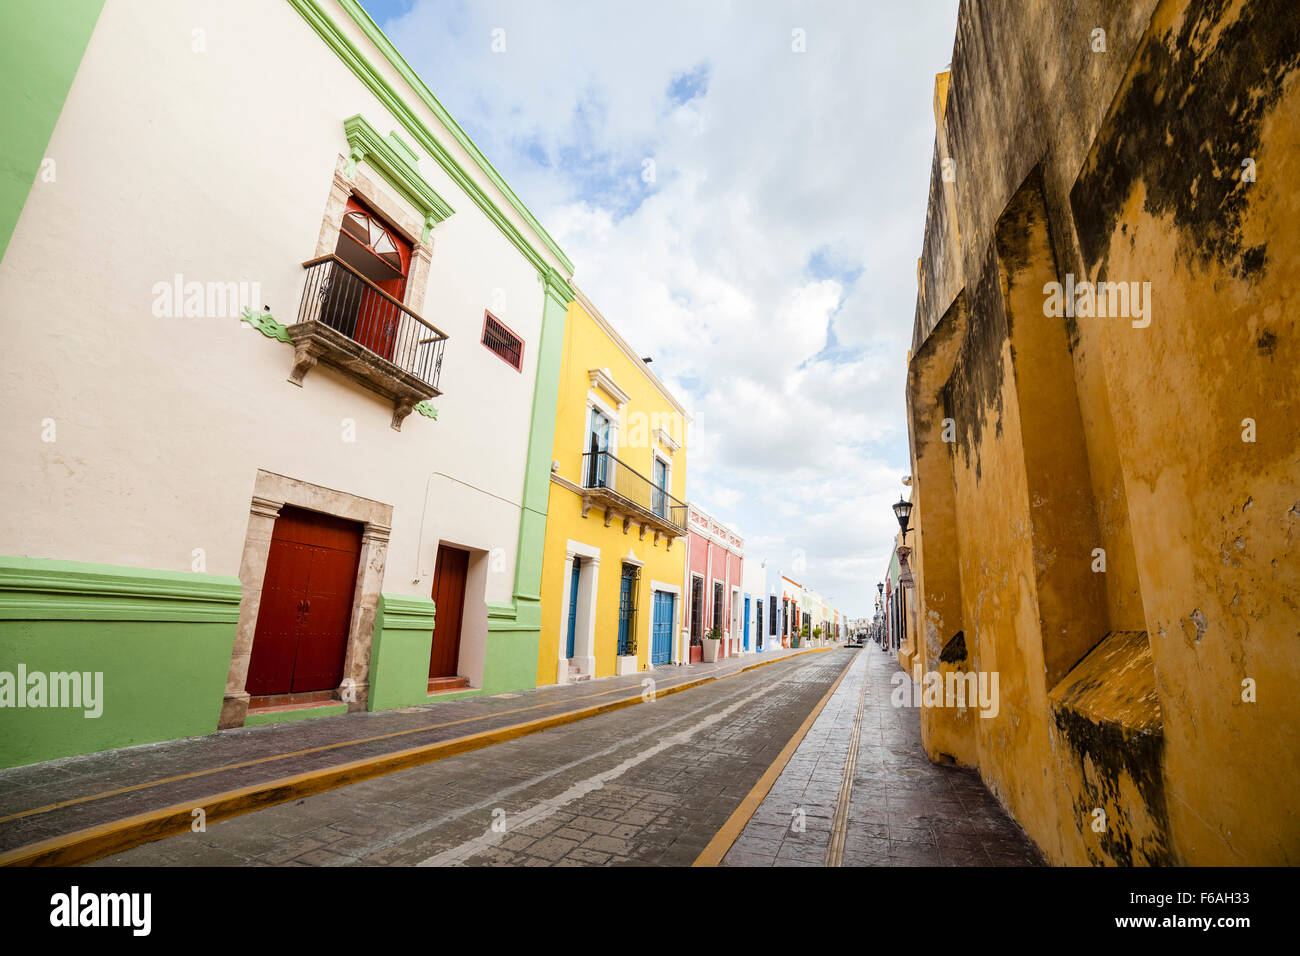 Colorful street in the city of Campeche, Mexico. - Stock Image